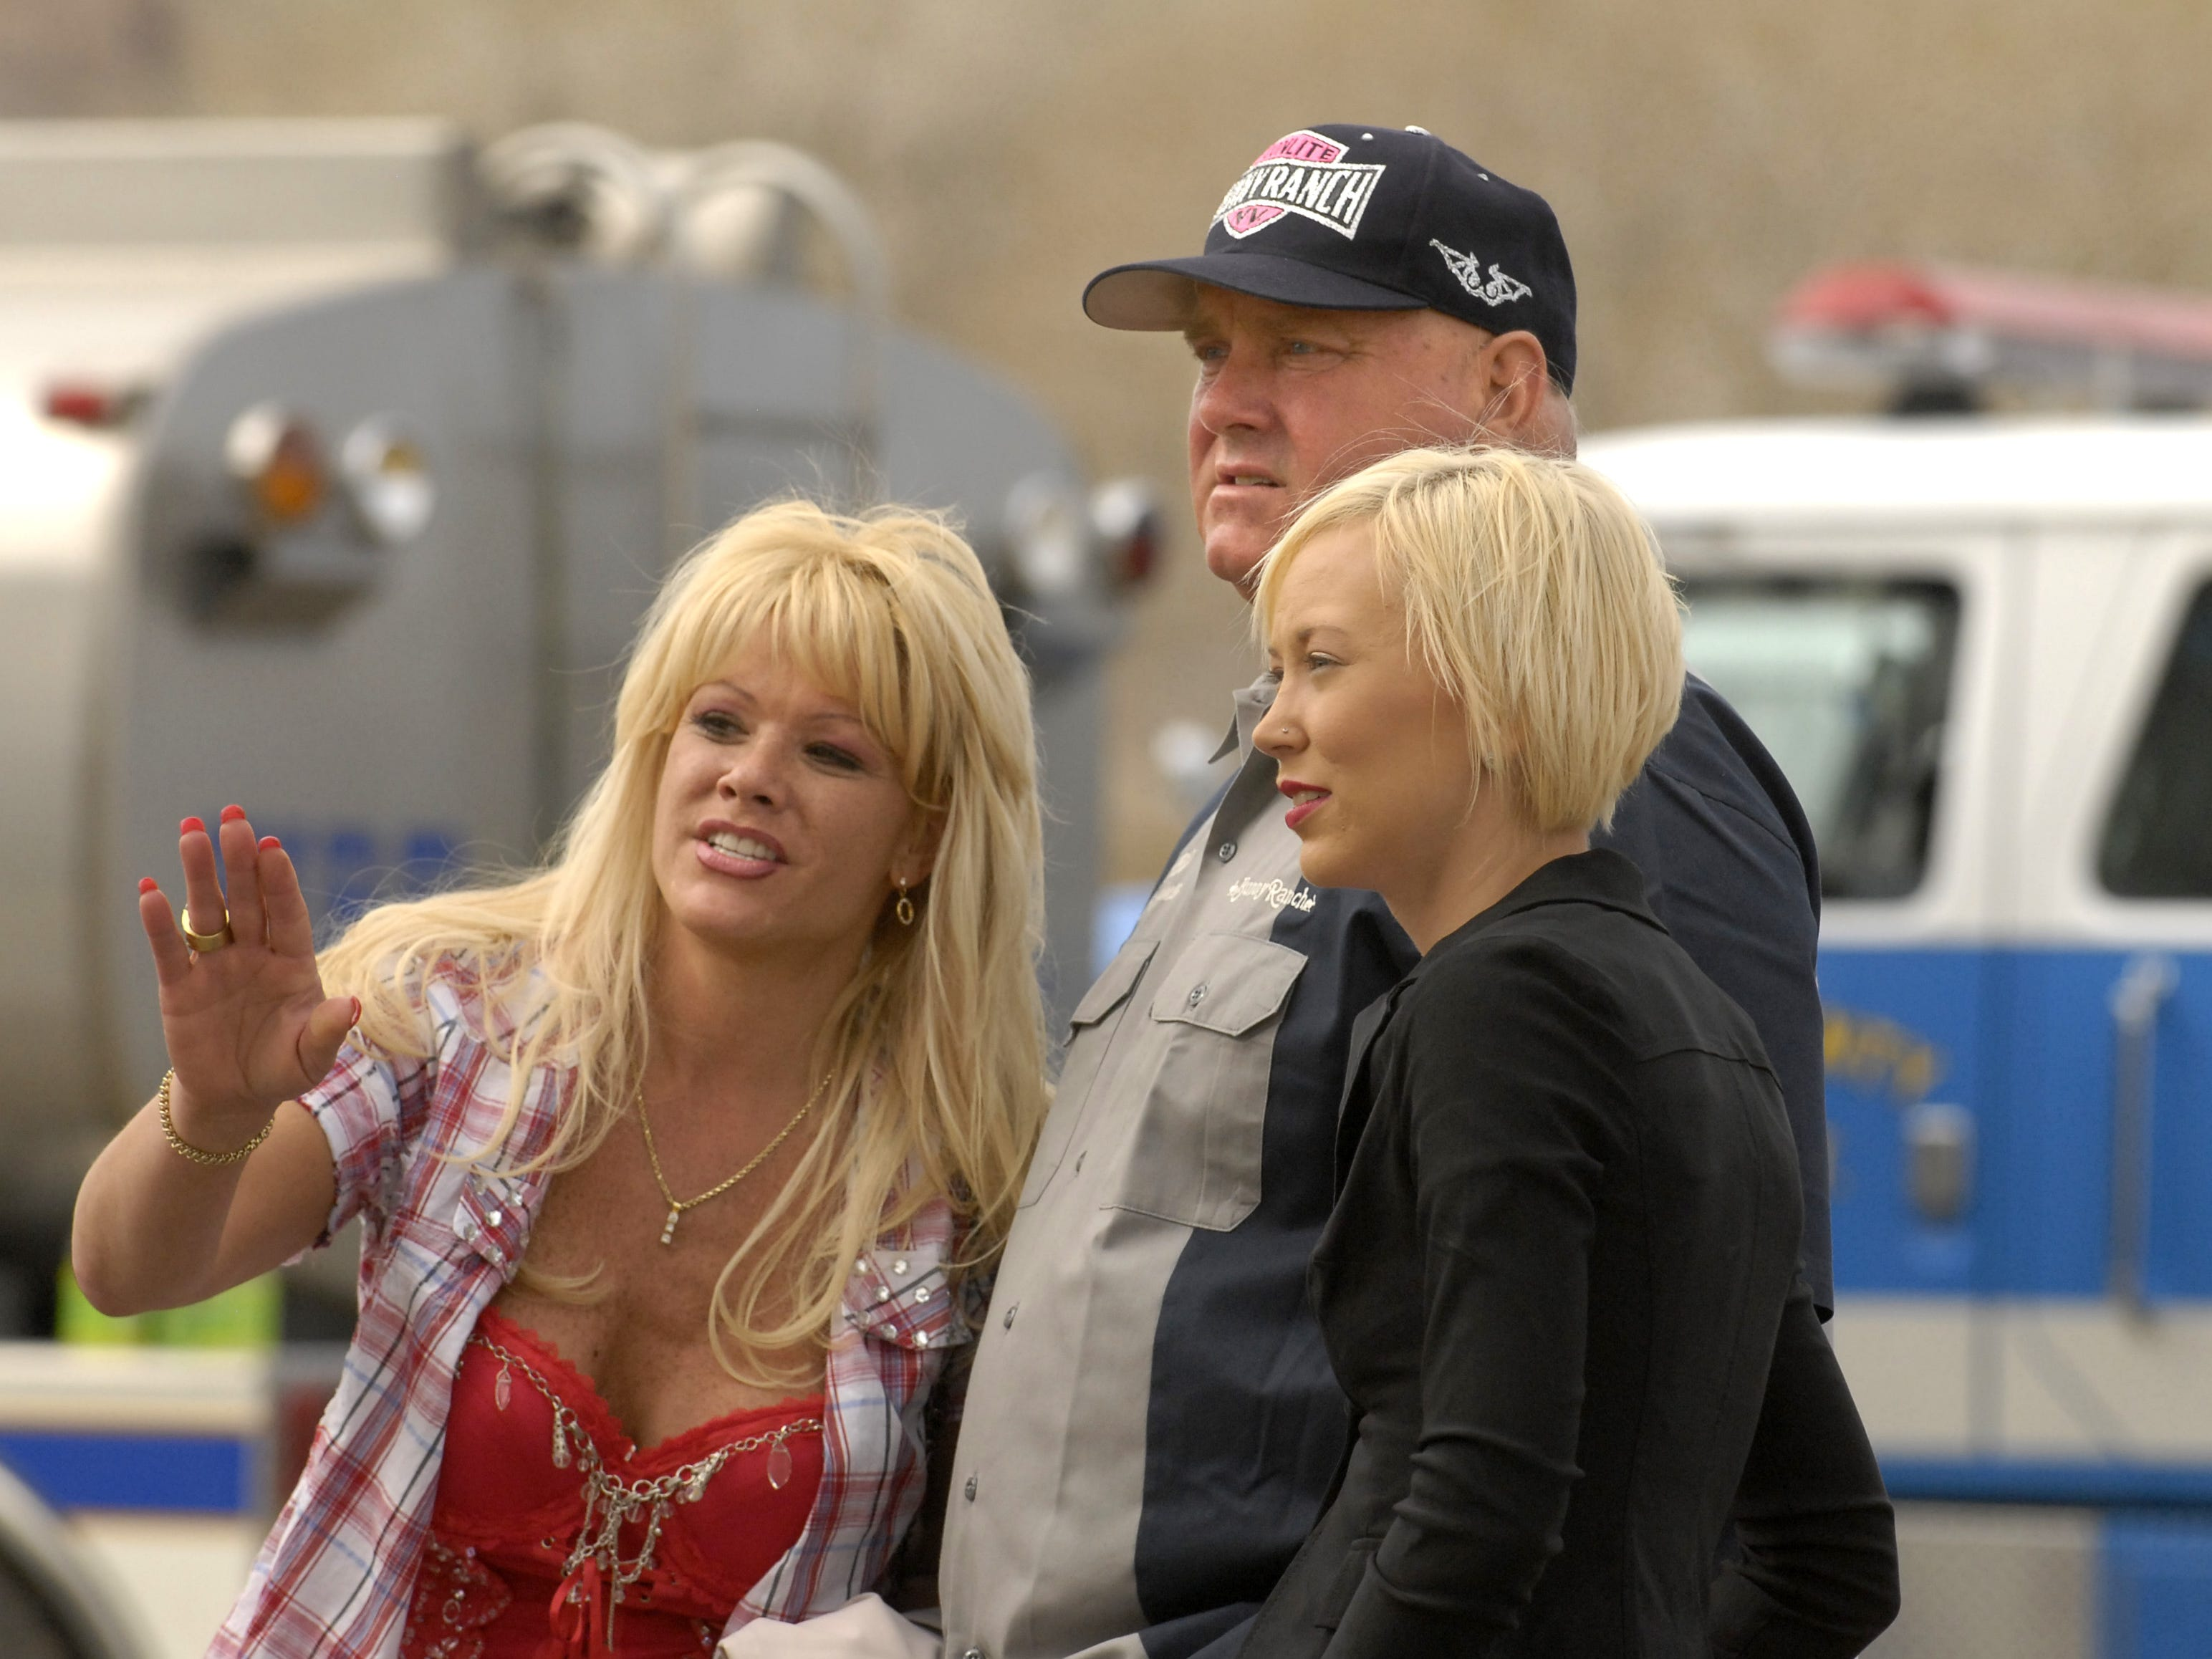 Air Force Amy, left, Dennis Hof and Brooke Taylor of the Moonlite Bunny Ranch watch as the old Mustang Ranch 2 building goes up in flames during a training burn Sunday, March 25, 2007. Amy used to work in the building before it closed in 1999. Photo by David B. Parker.